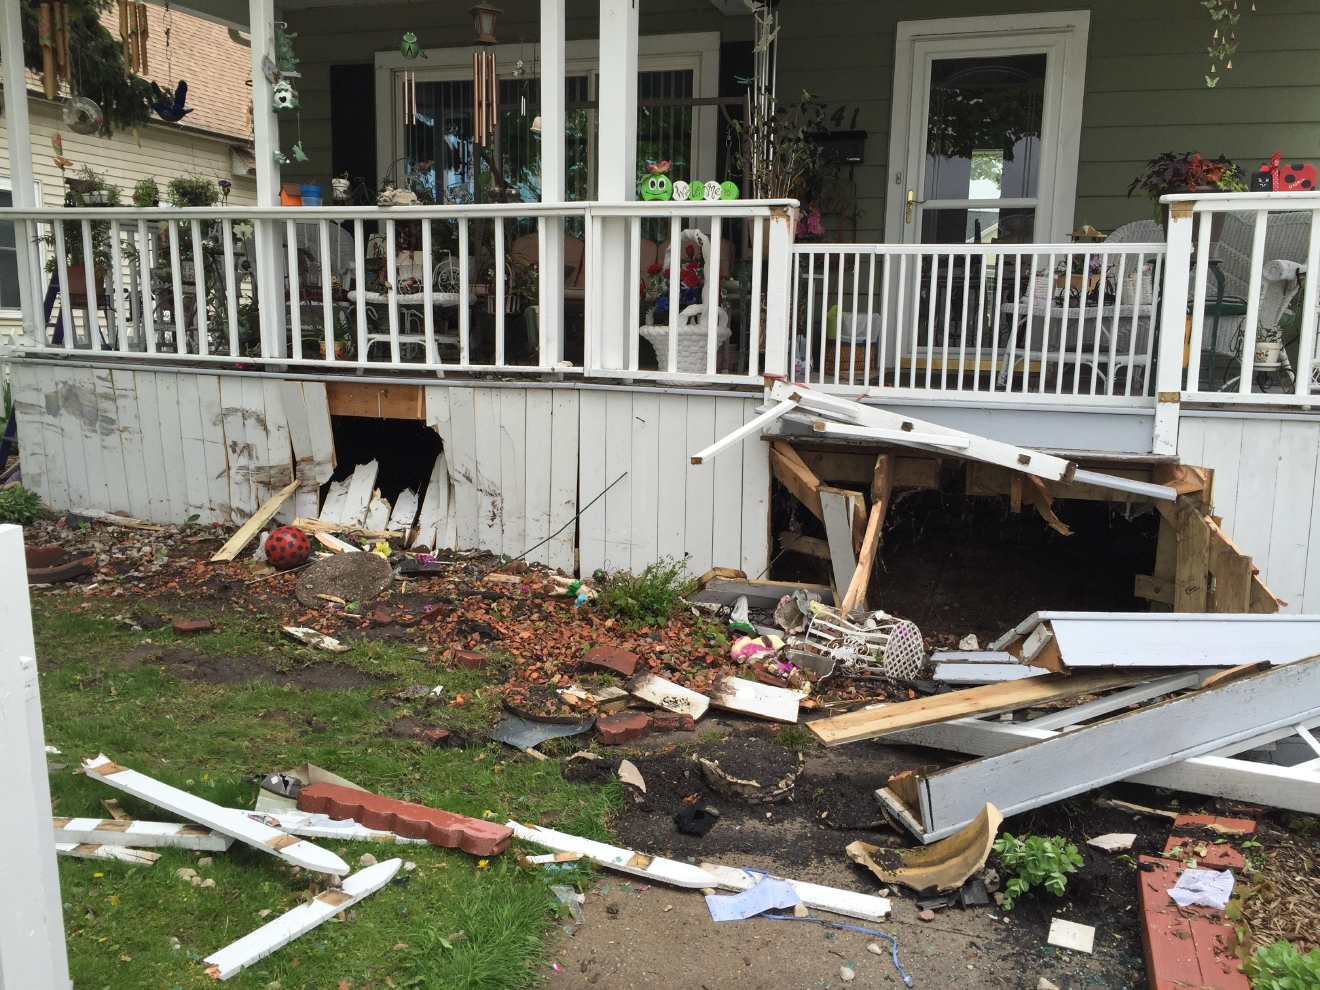 Damage to a house in the 300 block of n ashland ave in green